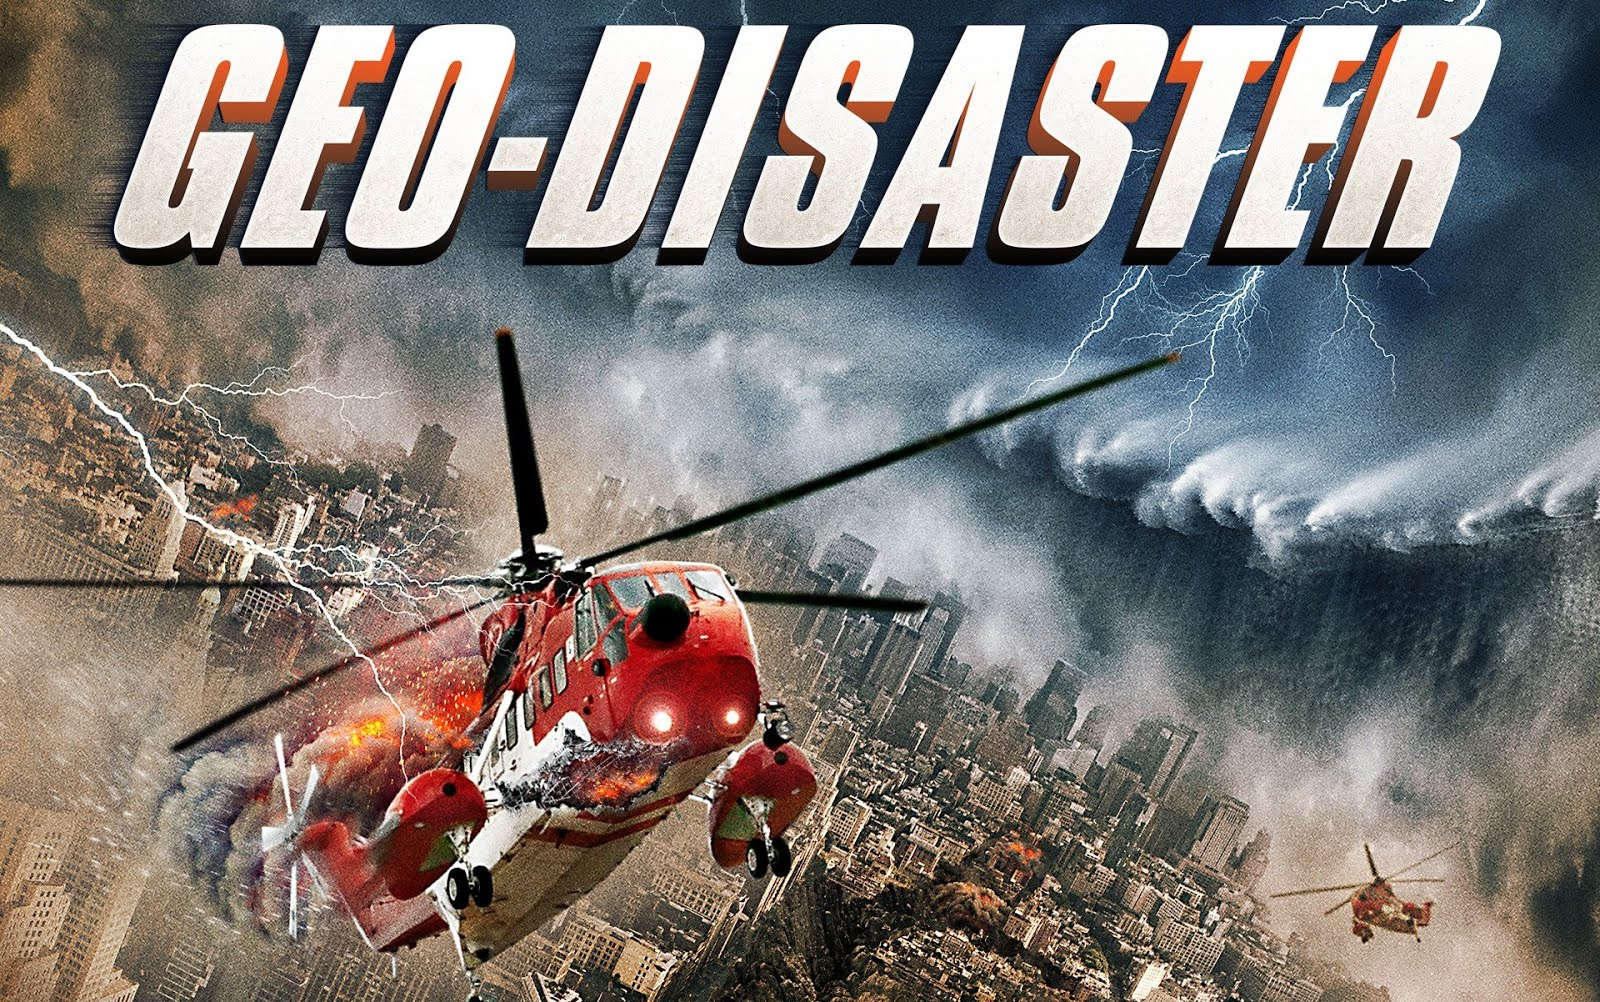 flirting with disaster movie trailer free full episodes